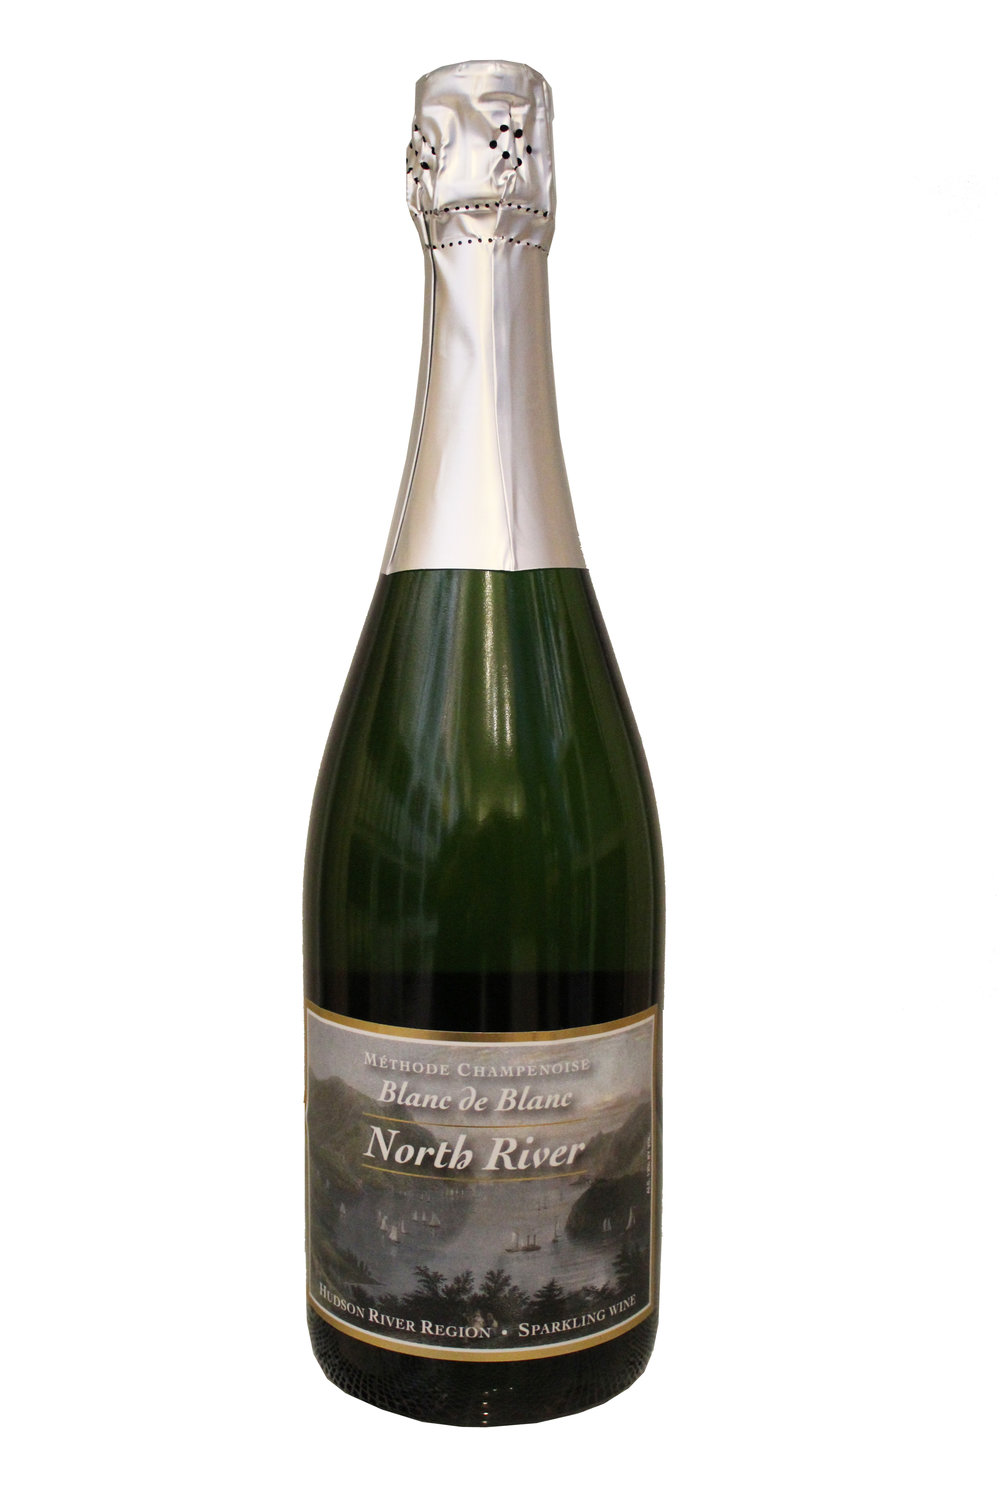 Blanc de Blancs North River, New York